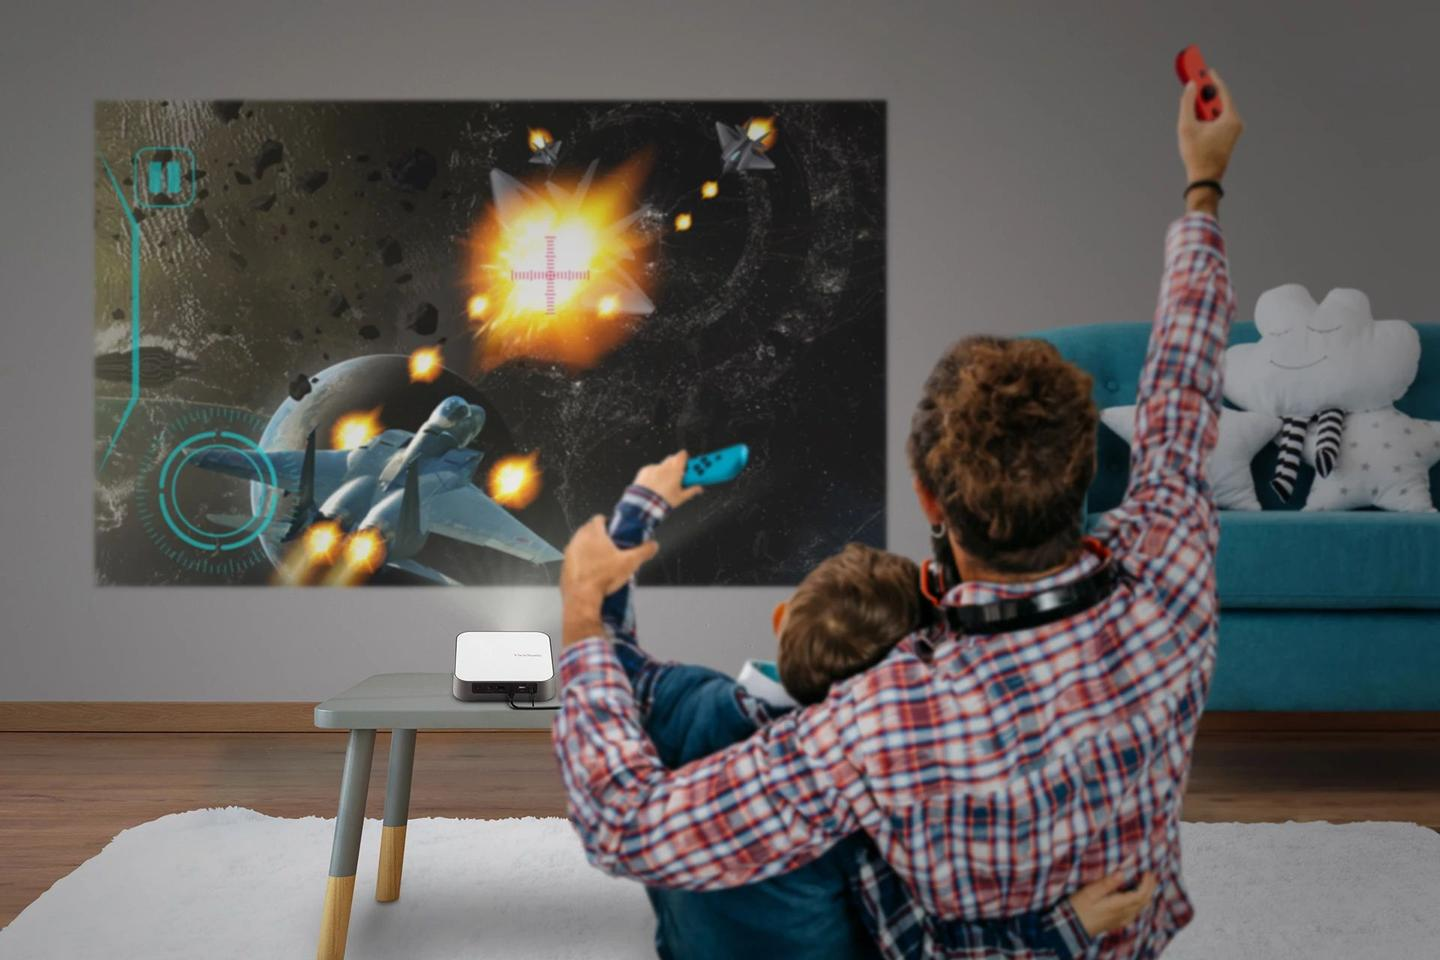 Whether it's game night or movie night, the M2e smart projector offers easy setup thanks to quick autofocus and auto keystone correction